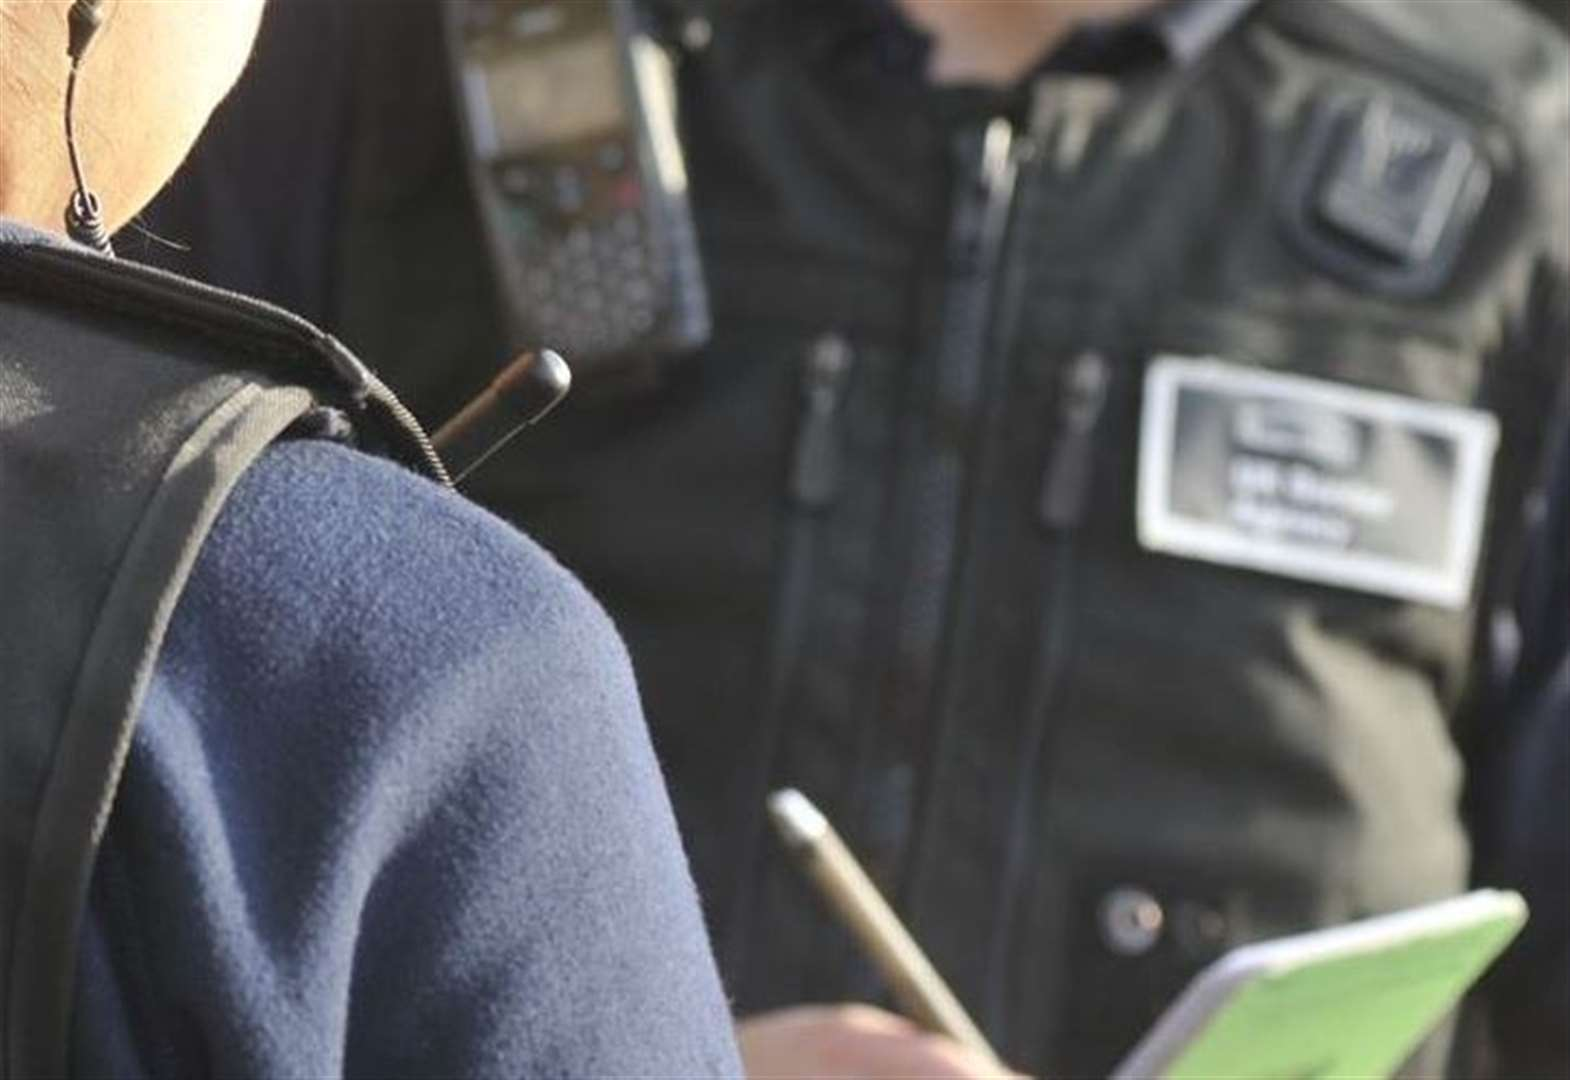 More people unsatisfied with police in Suffolk, figures reveal